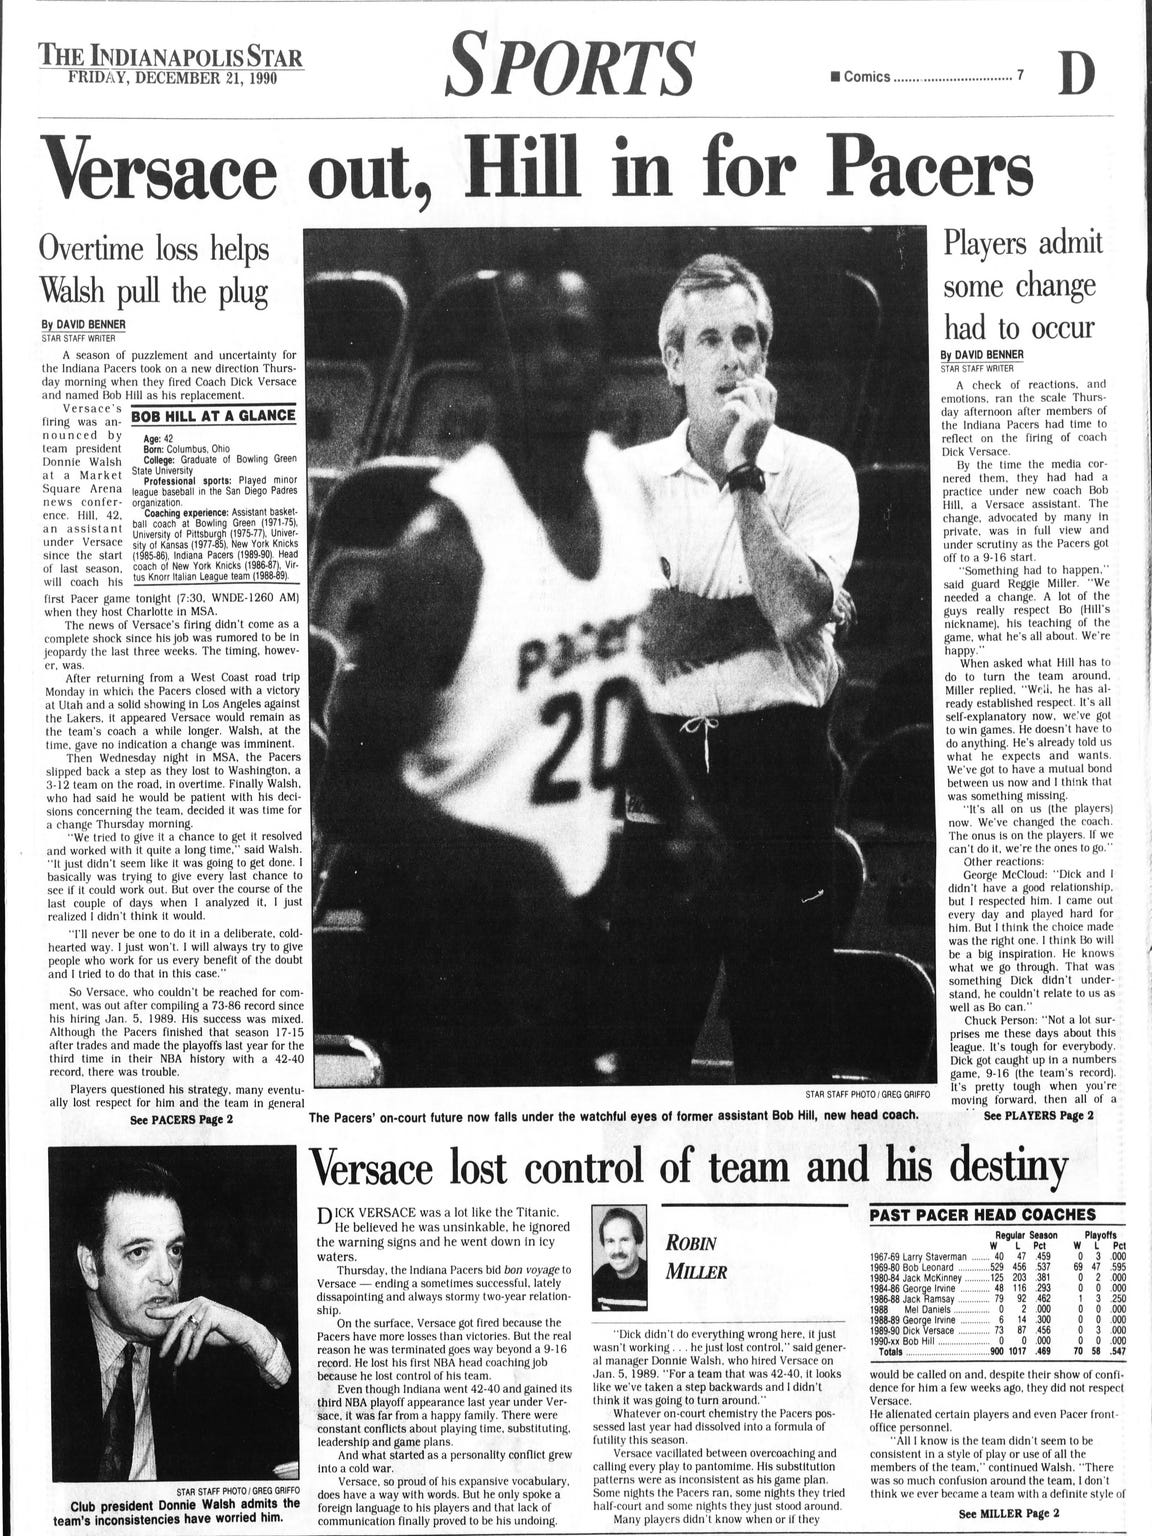 The Indianapolis Star's sports page the day after Bob